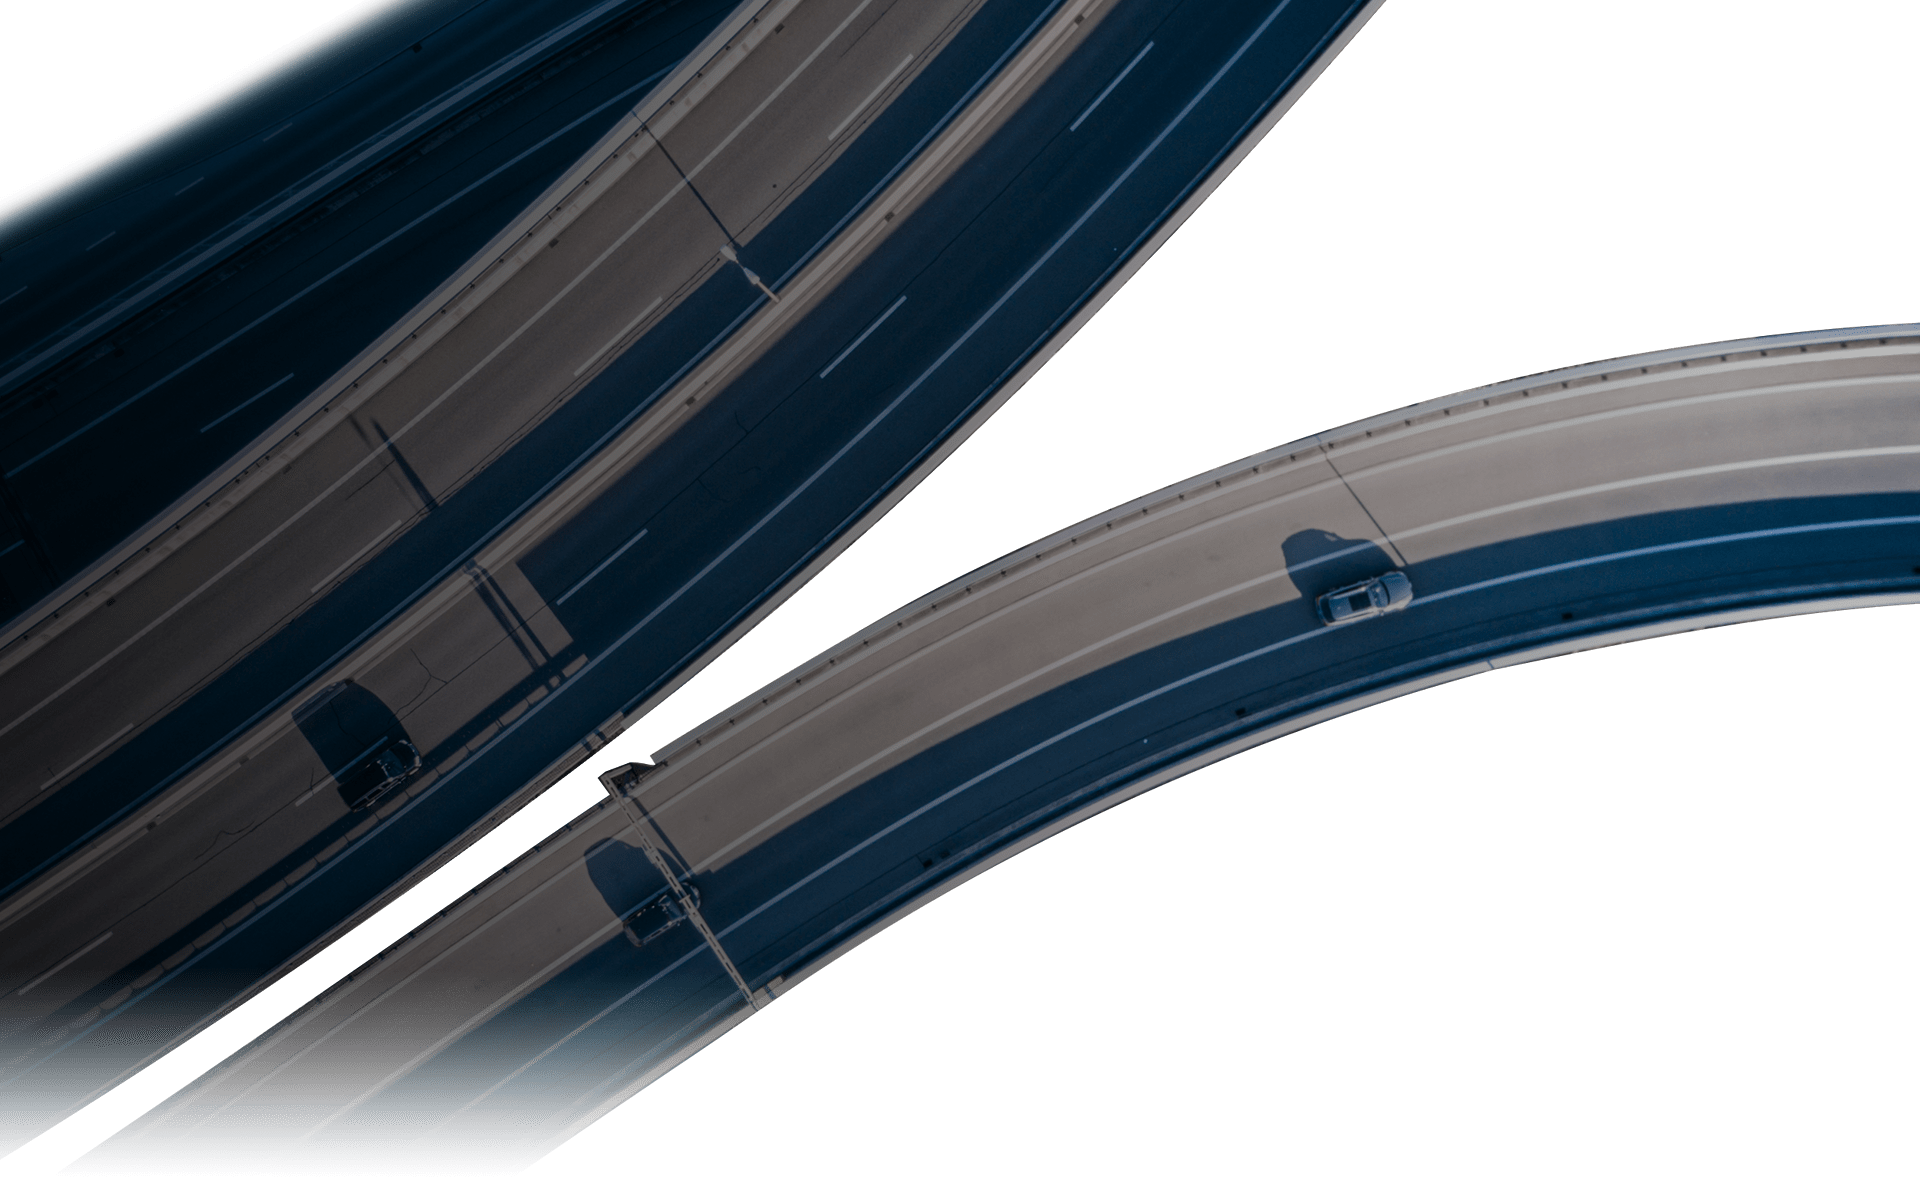 overhead view of vehicles on a highway junction